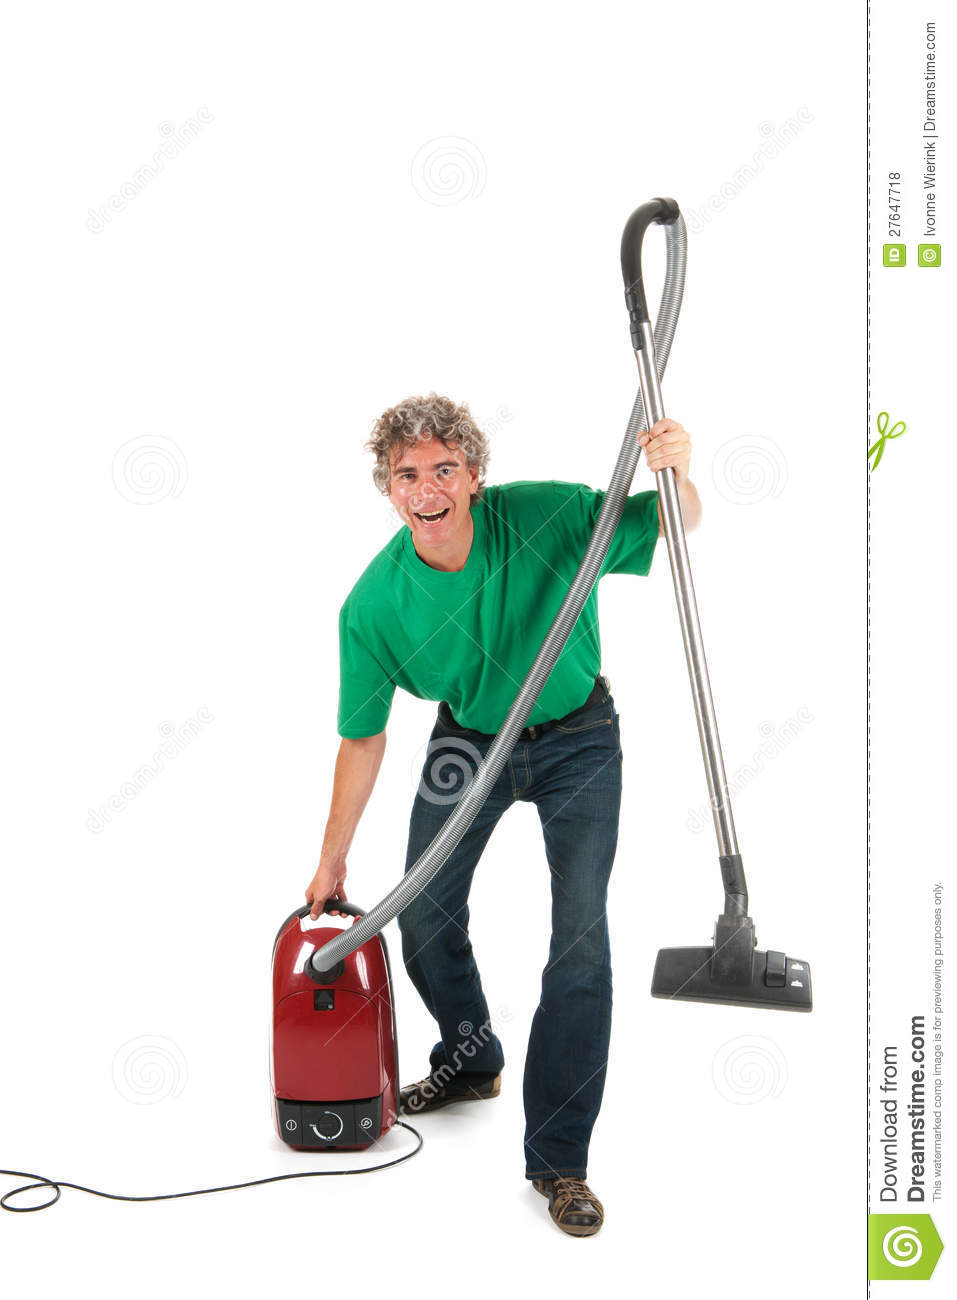 man with fun while housekeeping royalty free stock photos